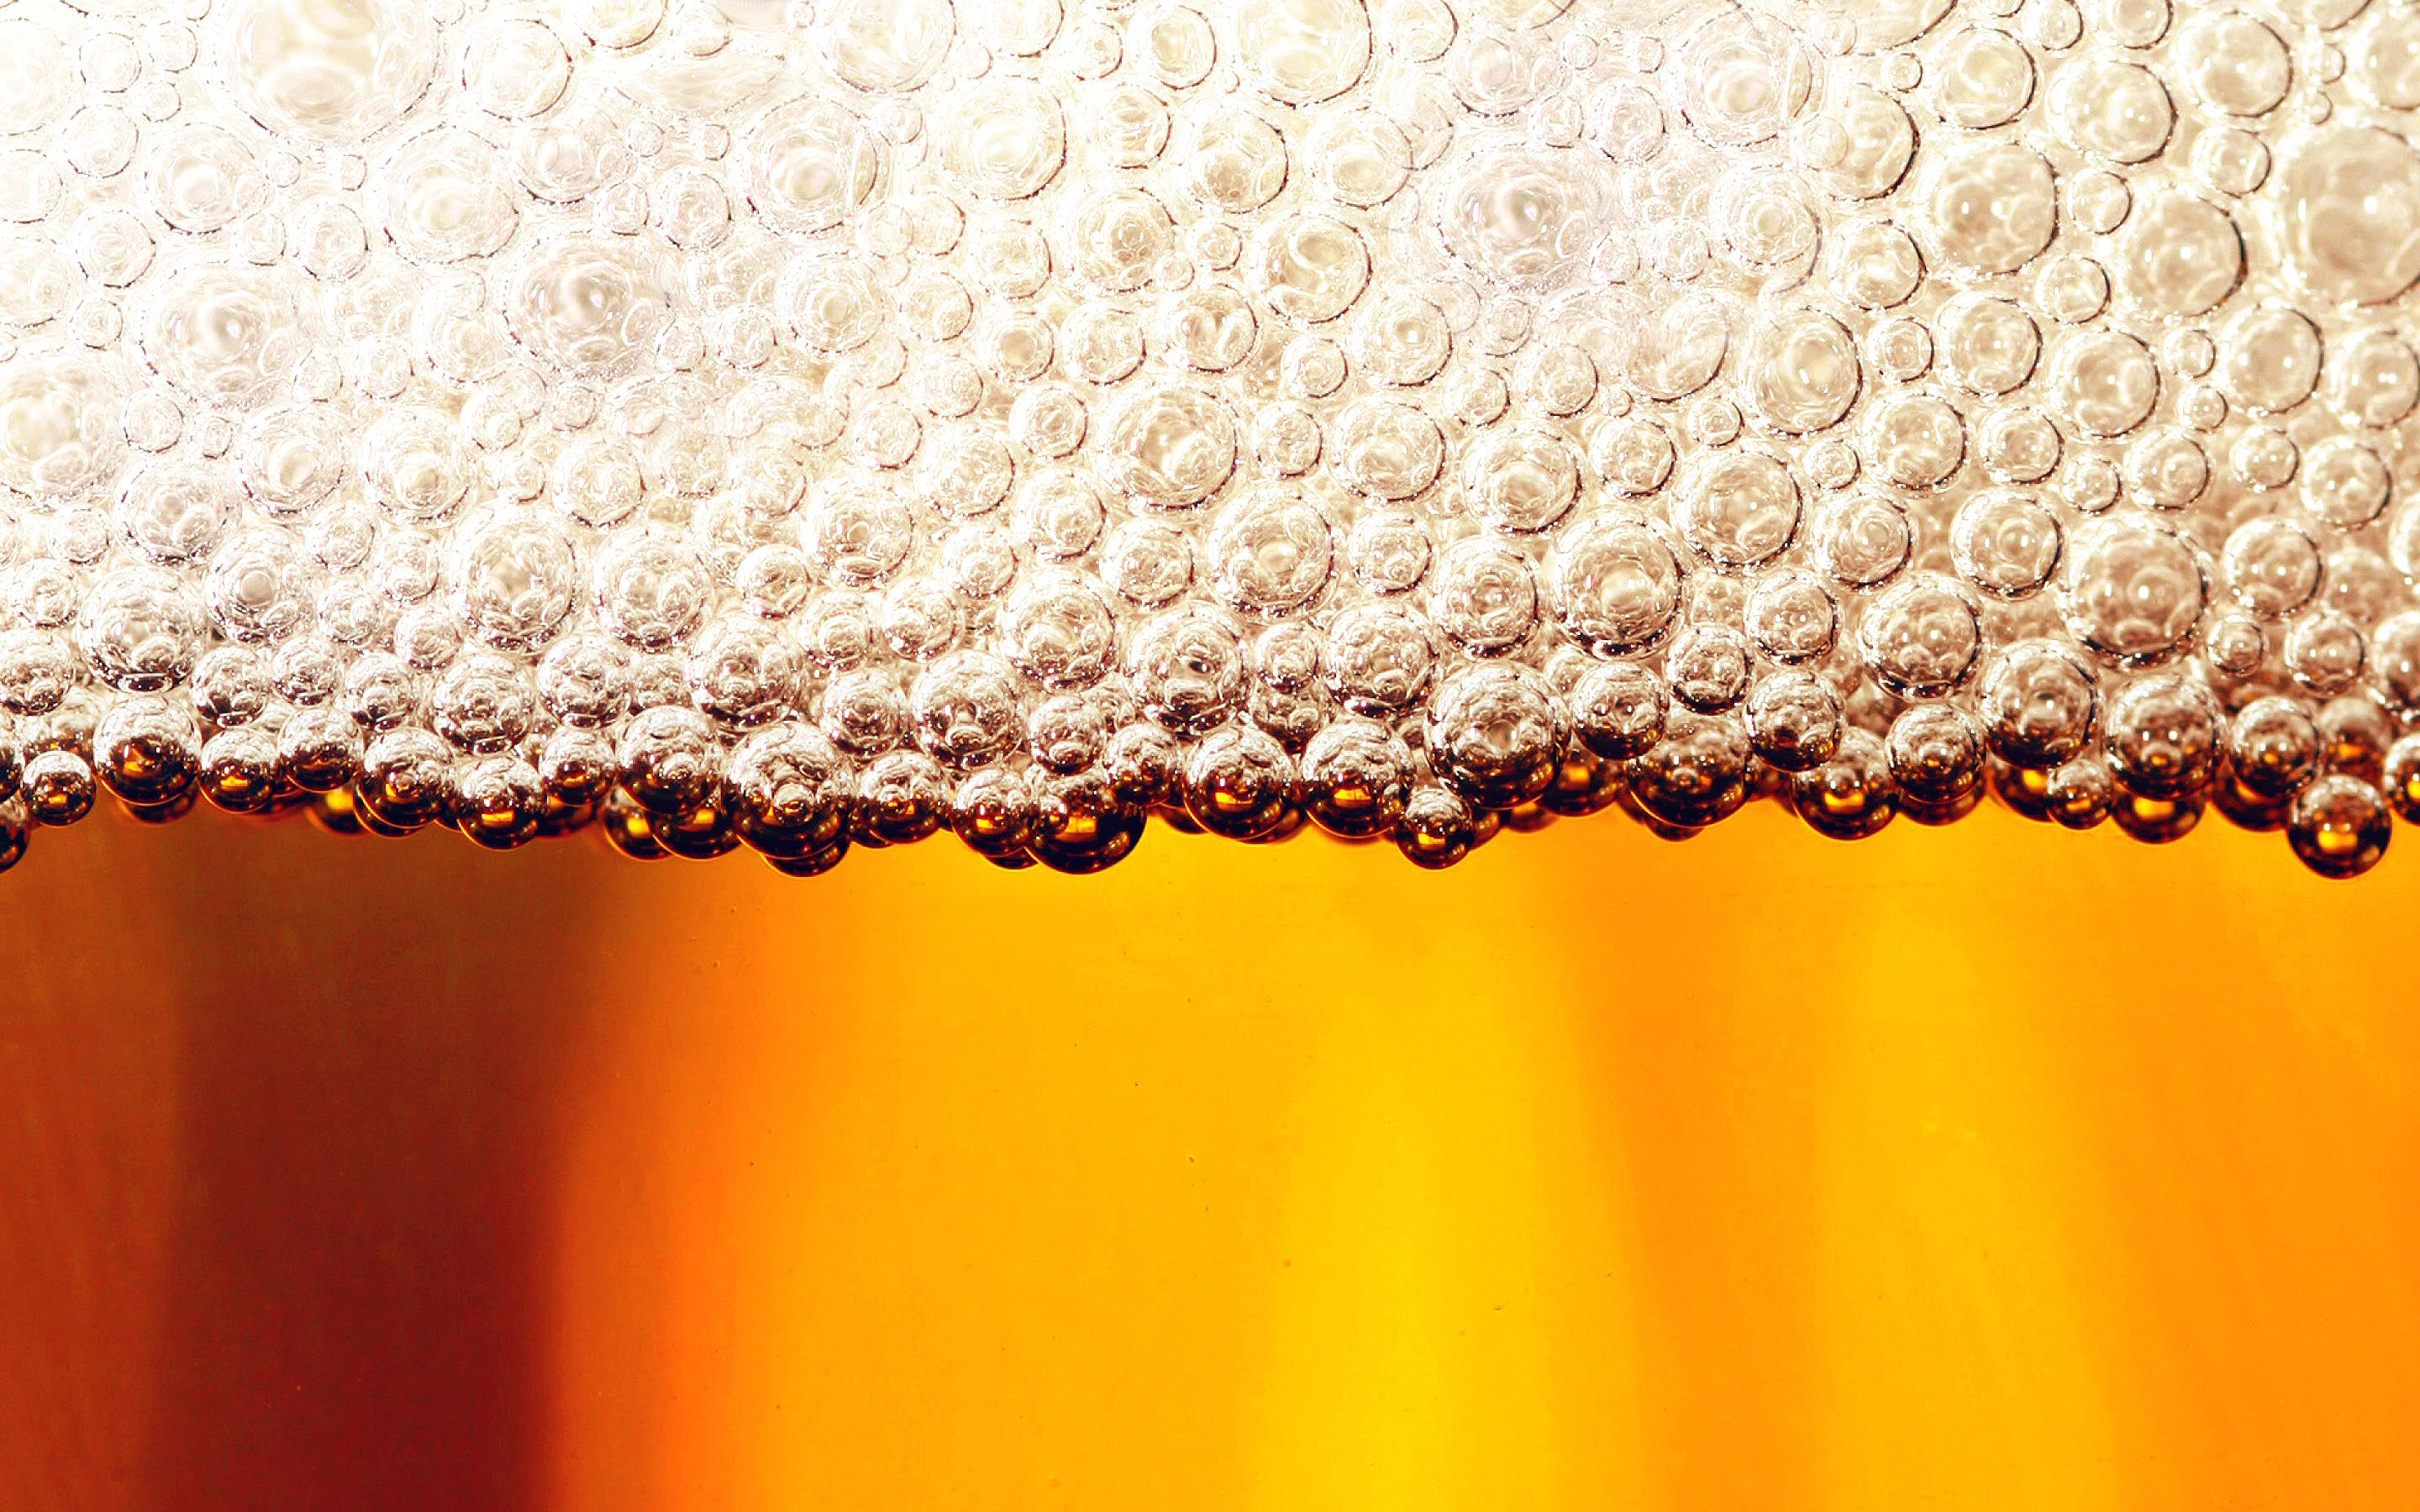 169 beer hd wallpapers background images wallpaper abyss